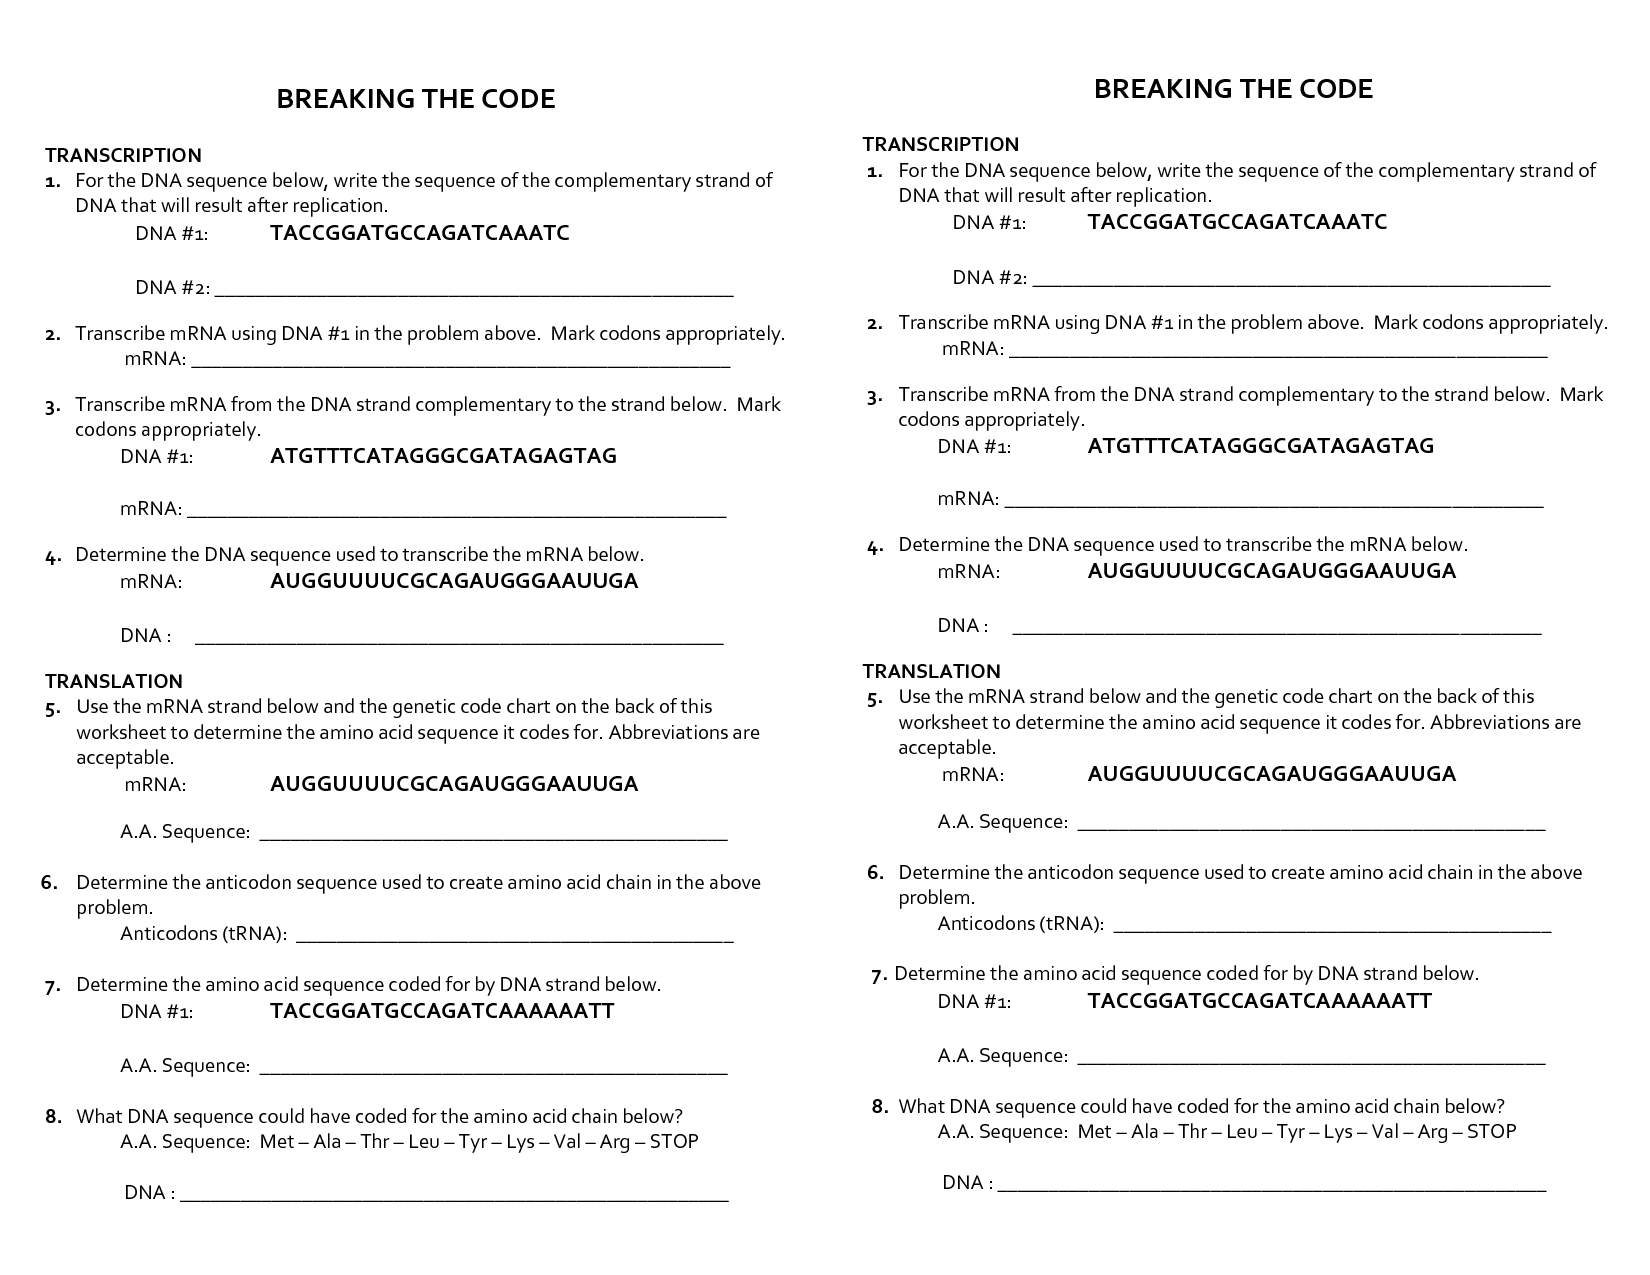 Breaking the Code Worksheet Answers | Genetics practice ...